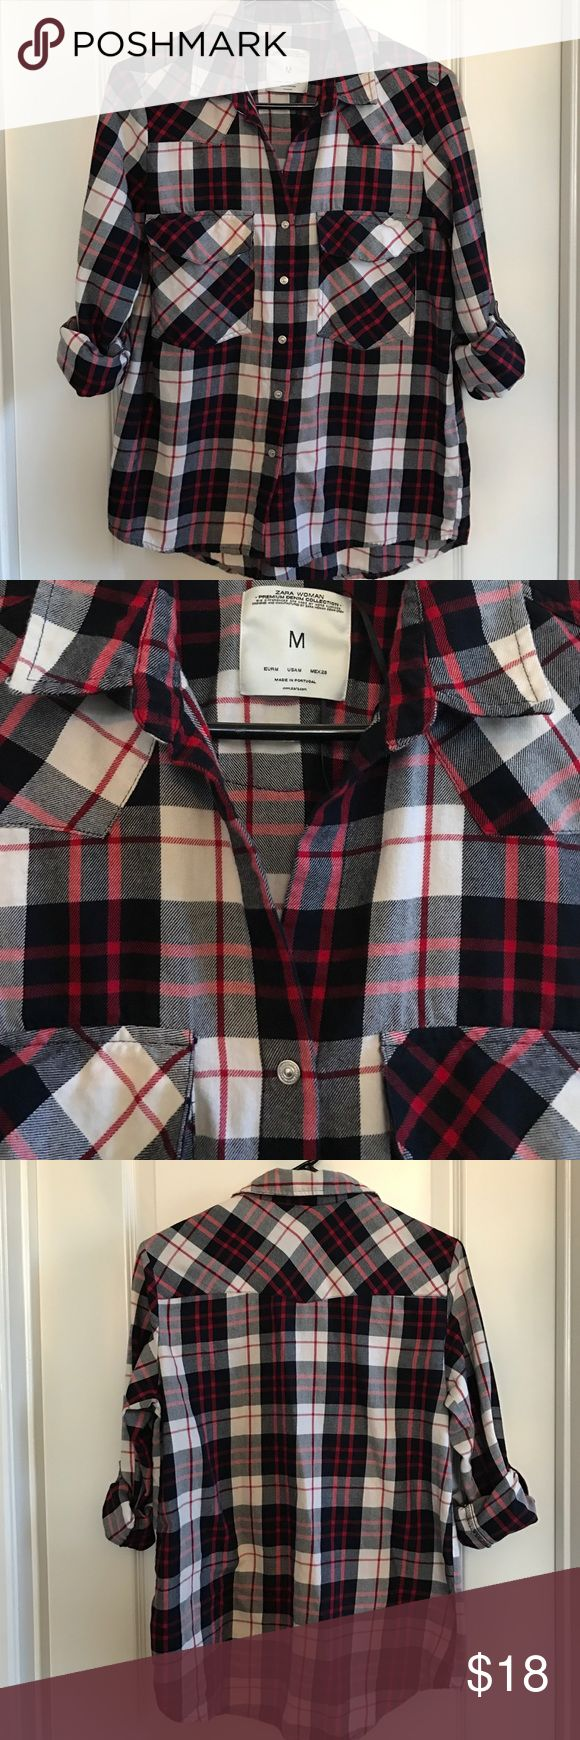 Zara Woman Flannel Shirt Size M Stripped flannel shirt that can pair up with some great jeans or even with a great skirt. Shirt is in great condition Zara Tops Button Down Shirts